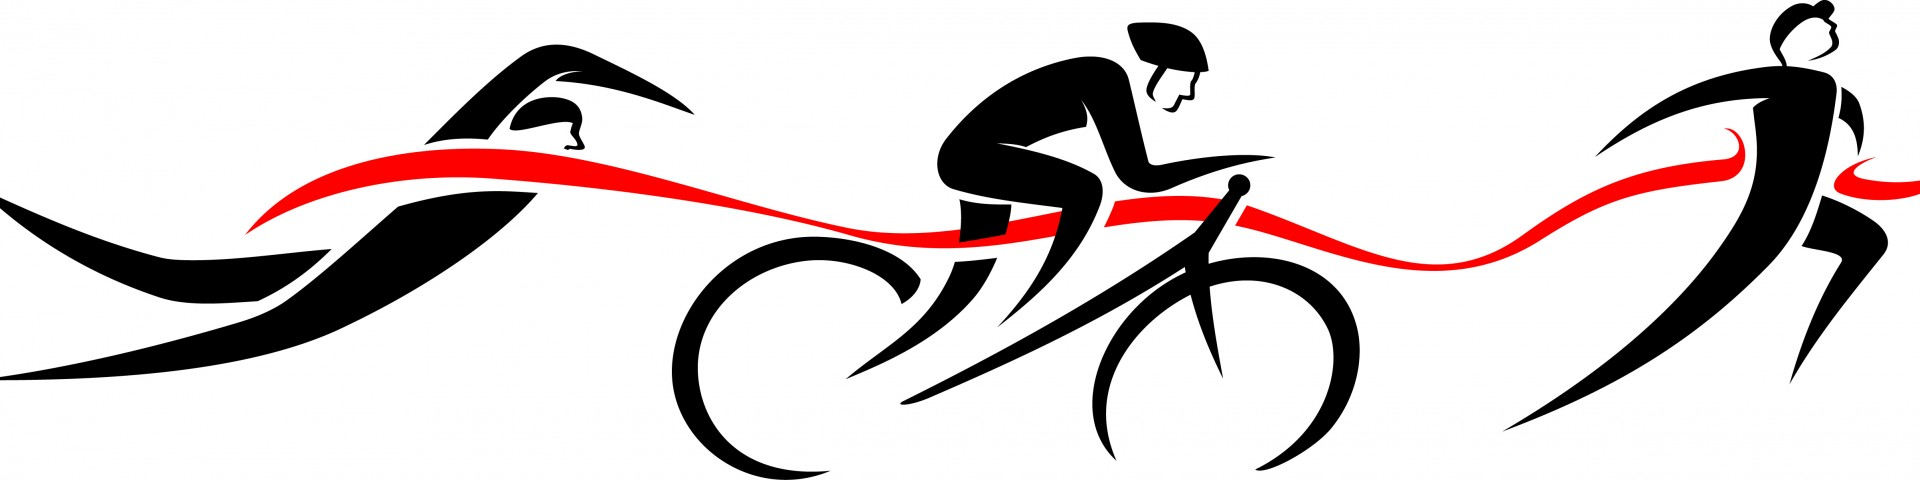 Triathlon Sport Across Staffordshire Amp Stoke On Trent